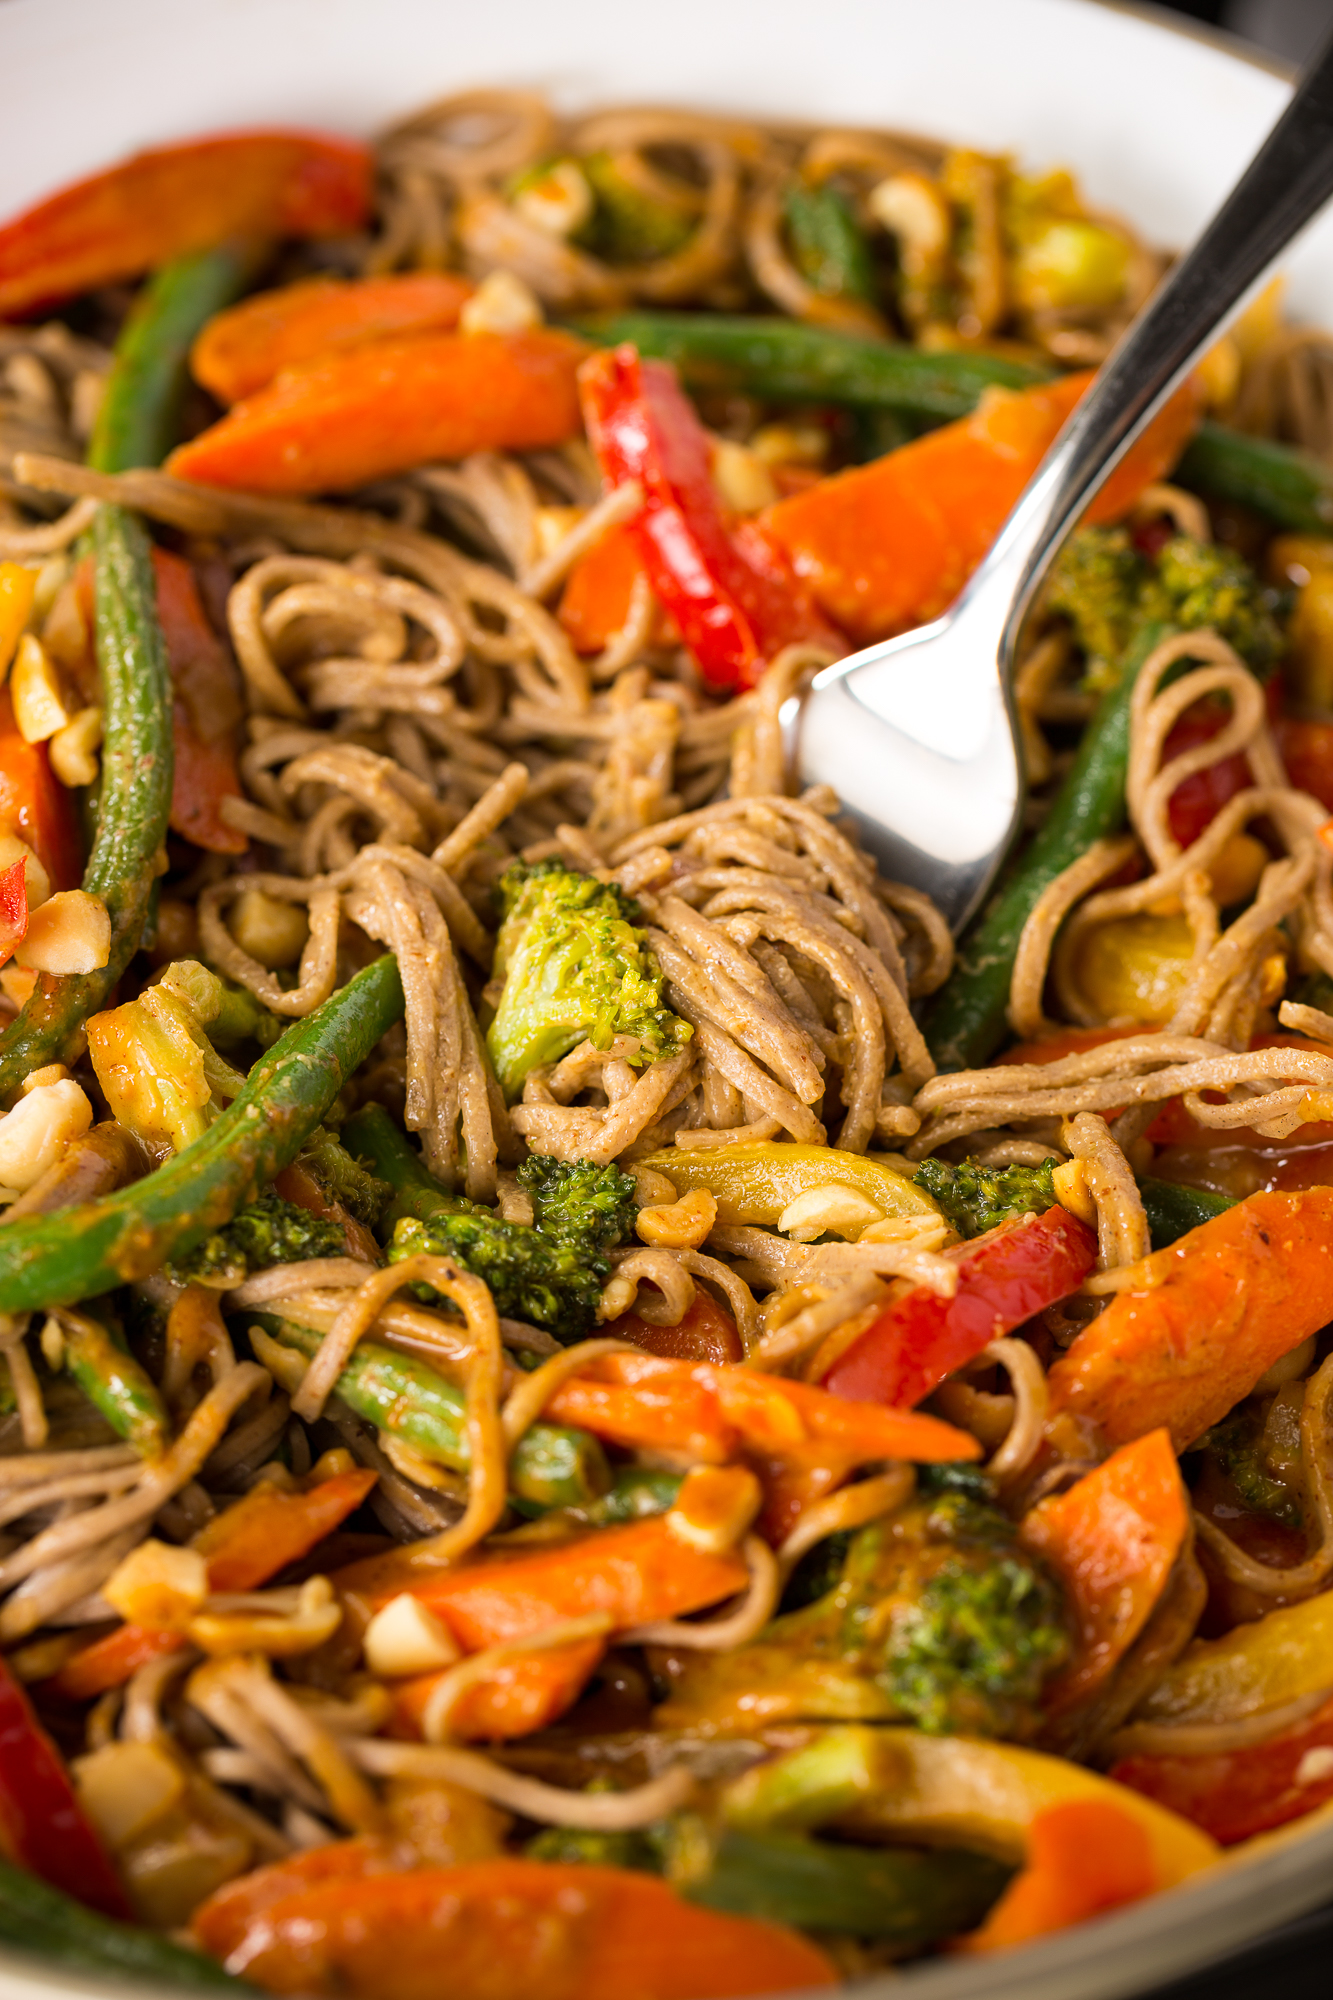 best rainbow stir fry recipe  rainbow stir fry